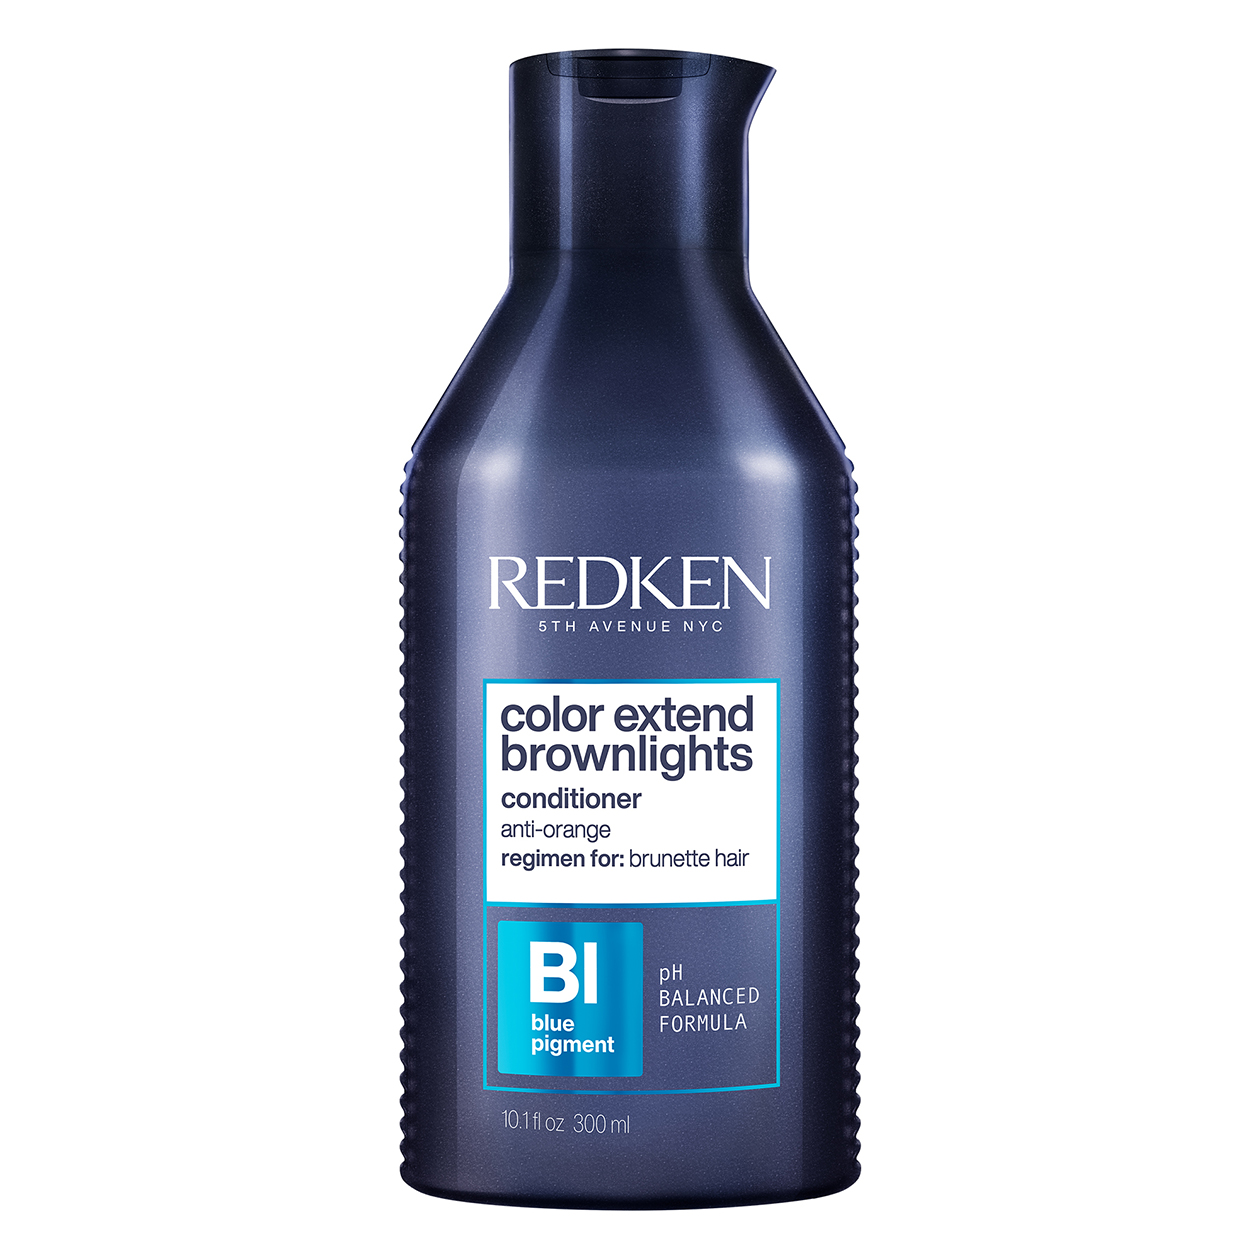 Redken-2019-Color-Extend-Brownlights-Conditioner-Product-Shot-Blue-1260x1600